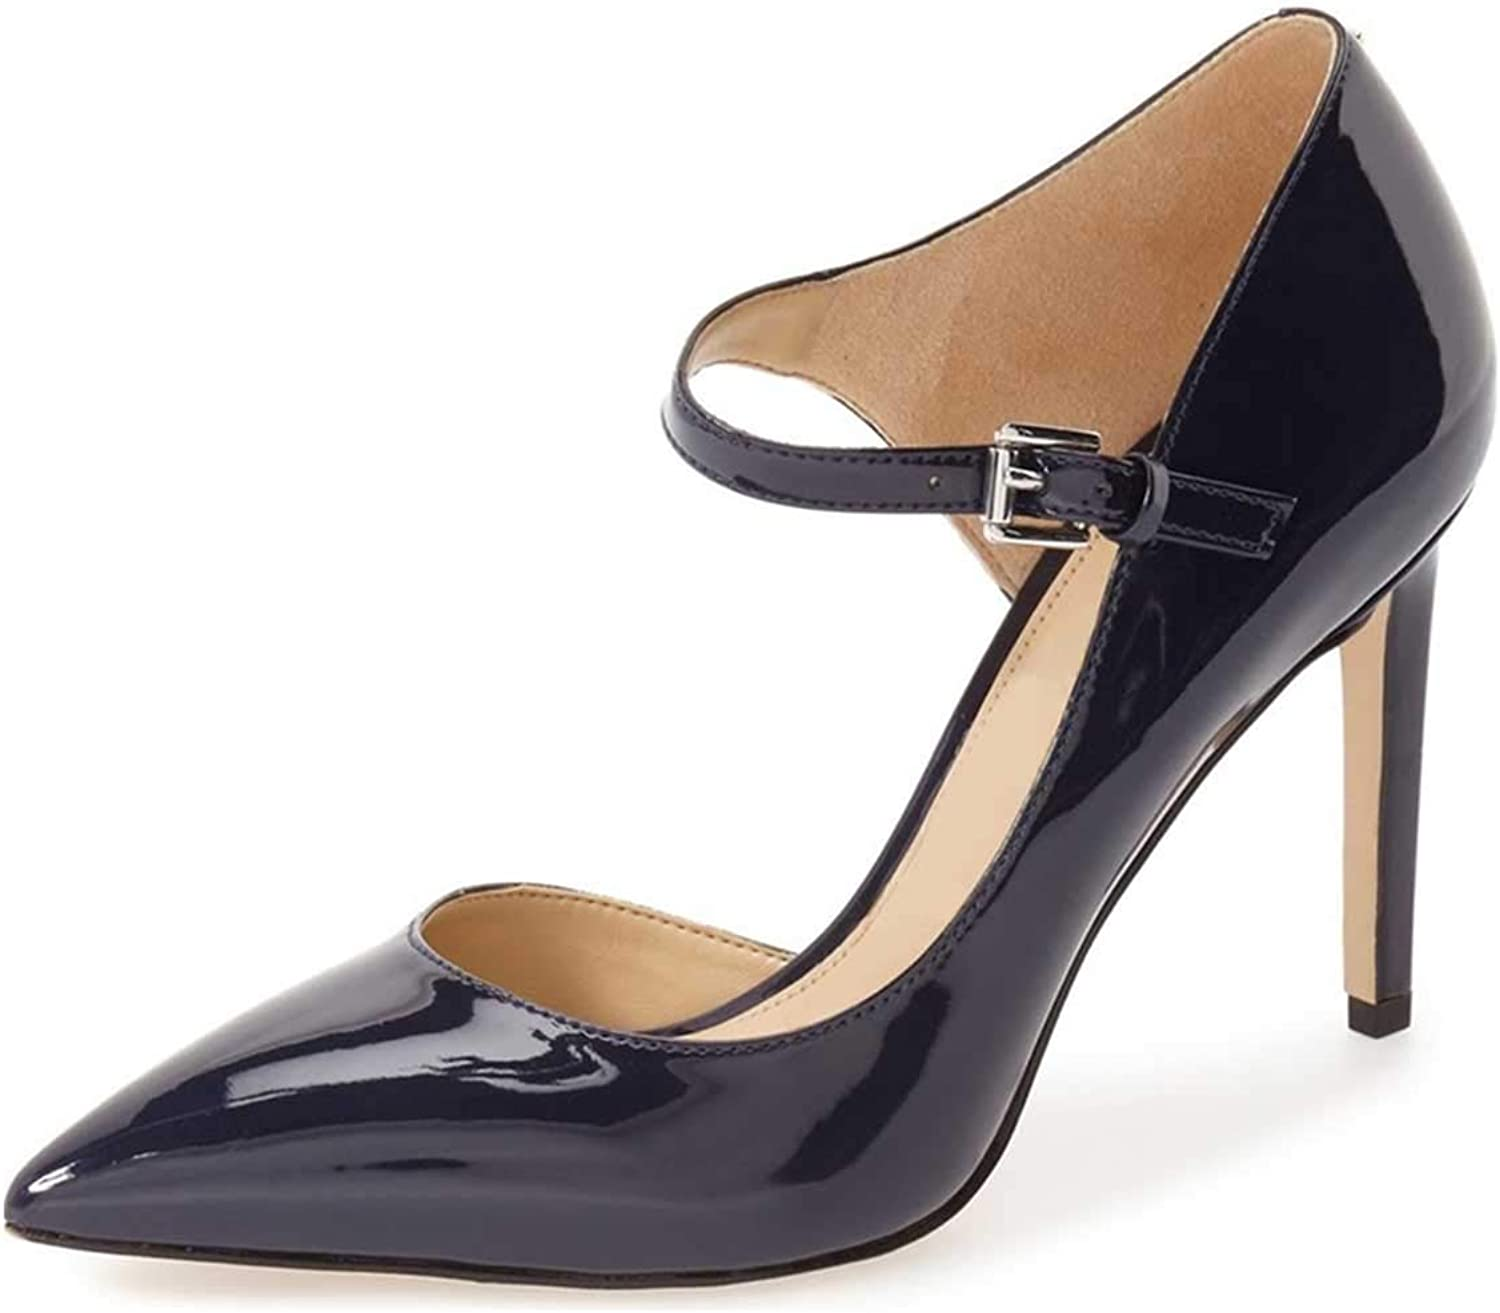 NJ Women Elegant Mary Jane Dress shoes Pointy Toe Stiletto High Heel D'Orsay Glossy Patent Office Lady Formal Party Pumps